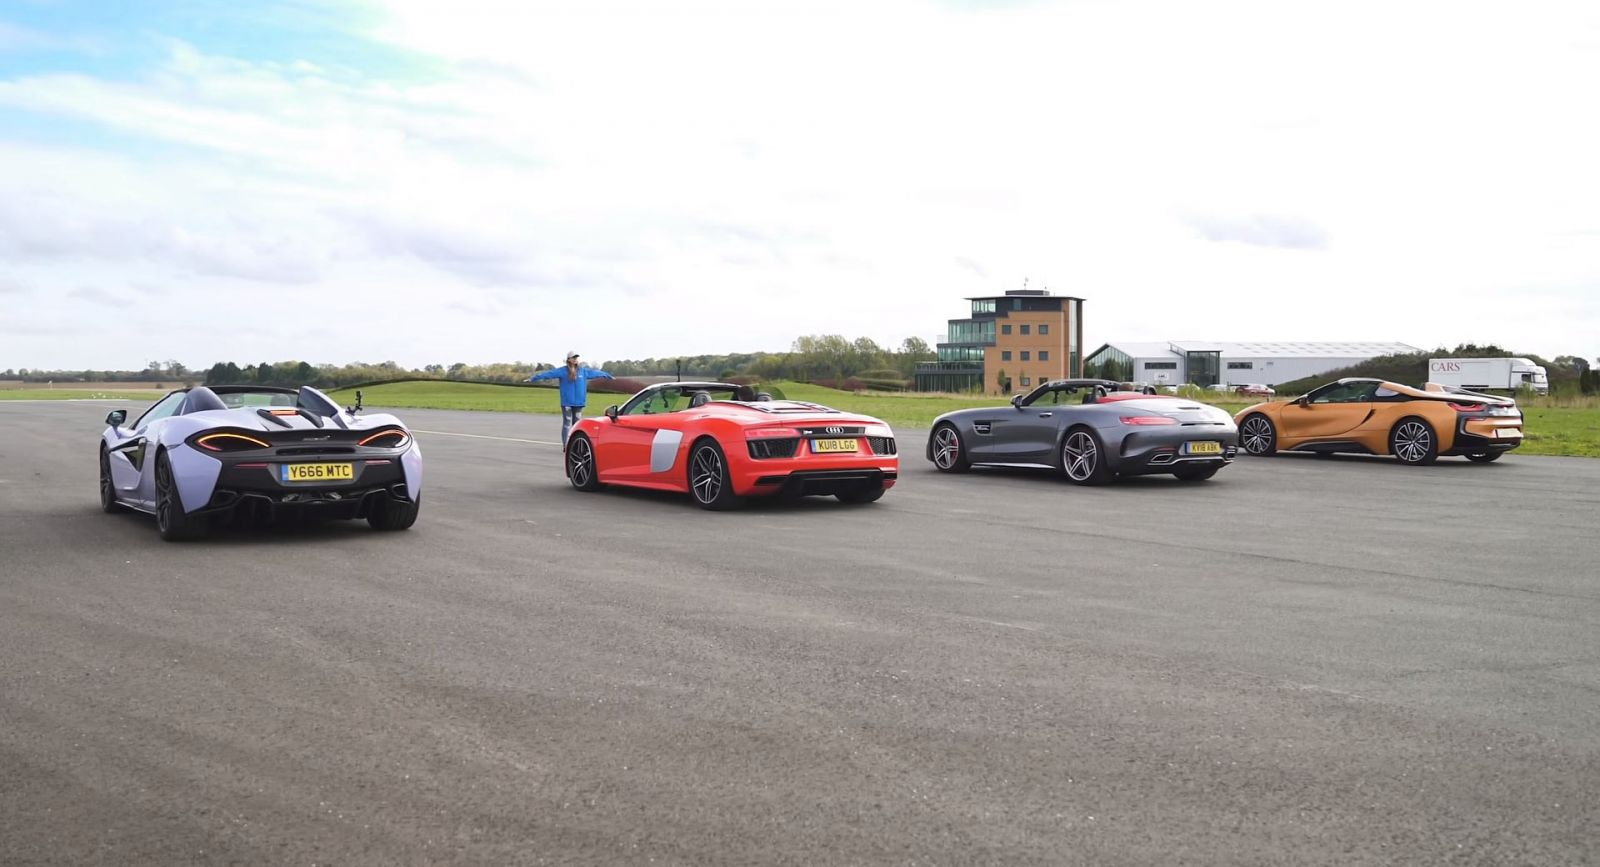 Audi-R8-BMW-i8-McLaren-570S-Mercedes-AMG-GT-C-sprint-video